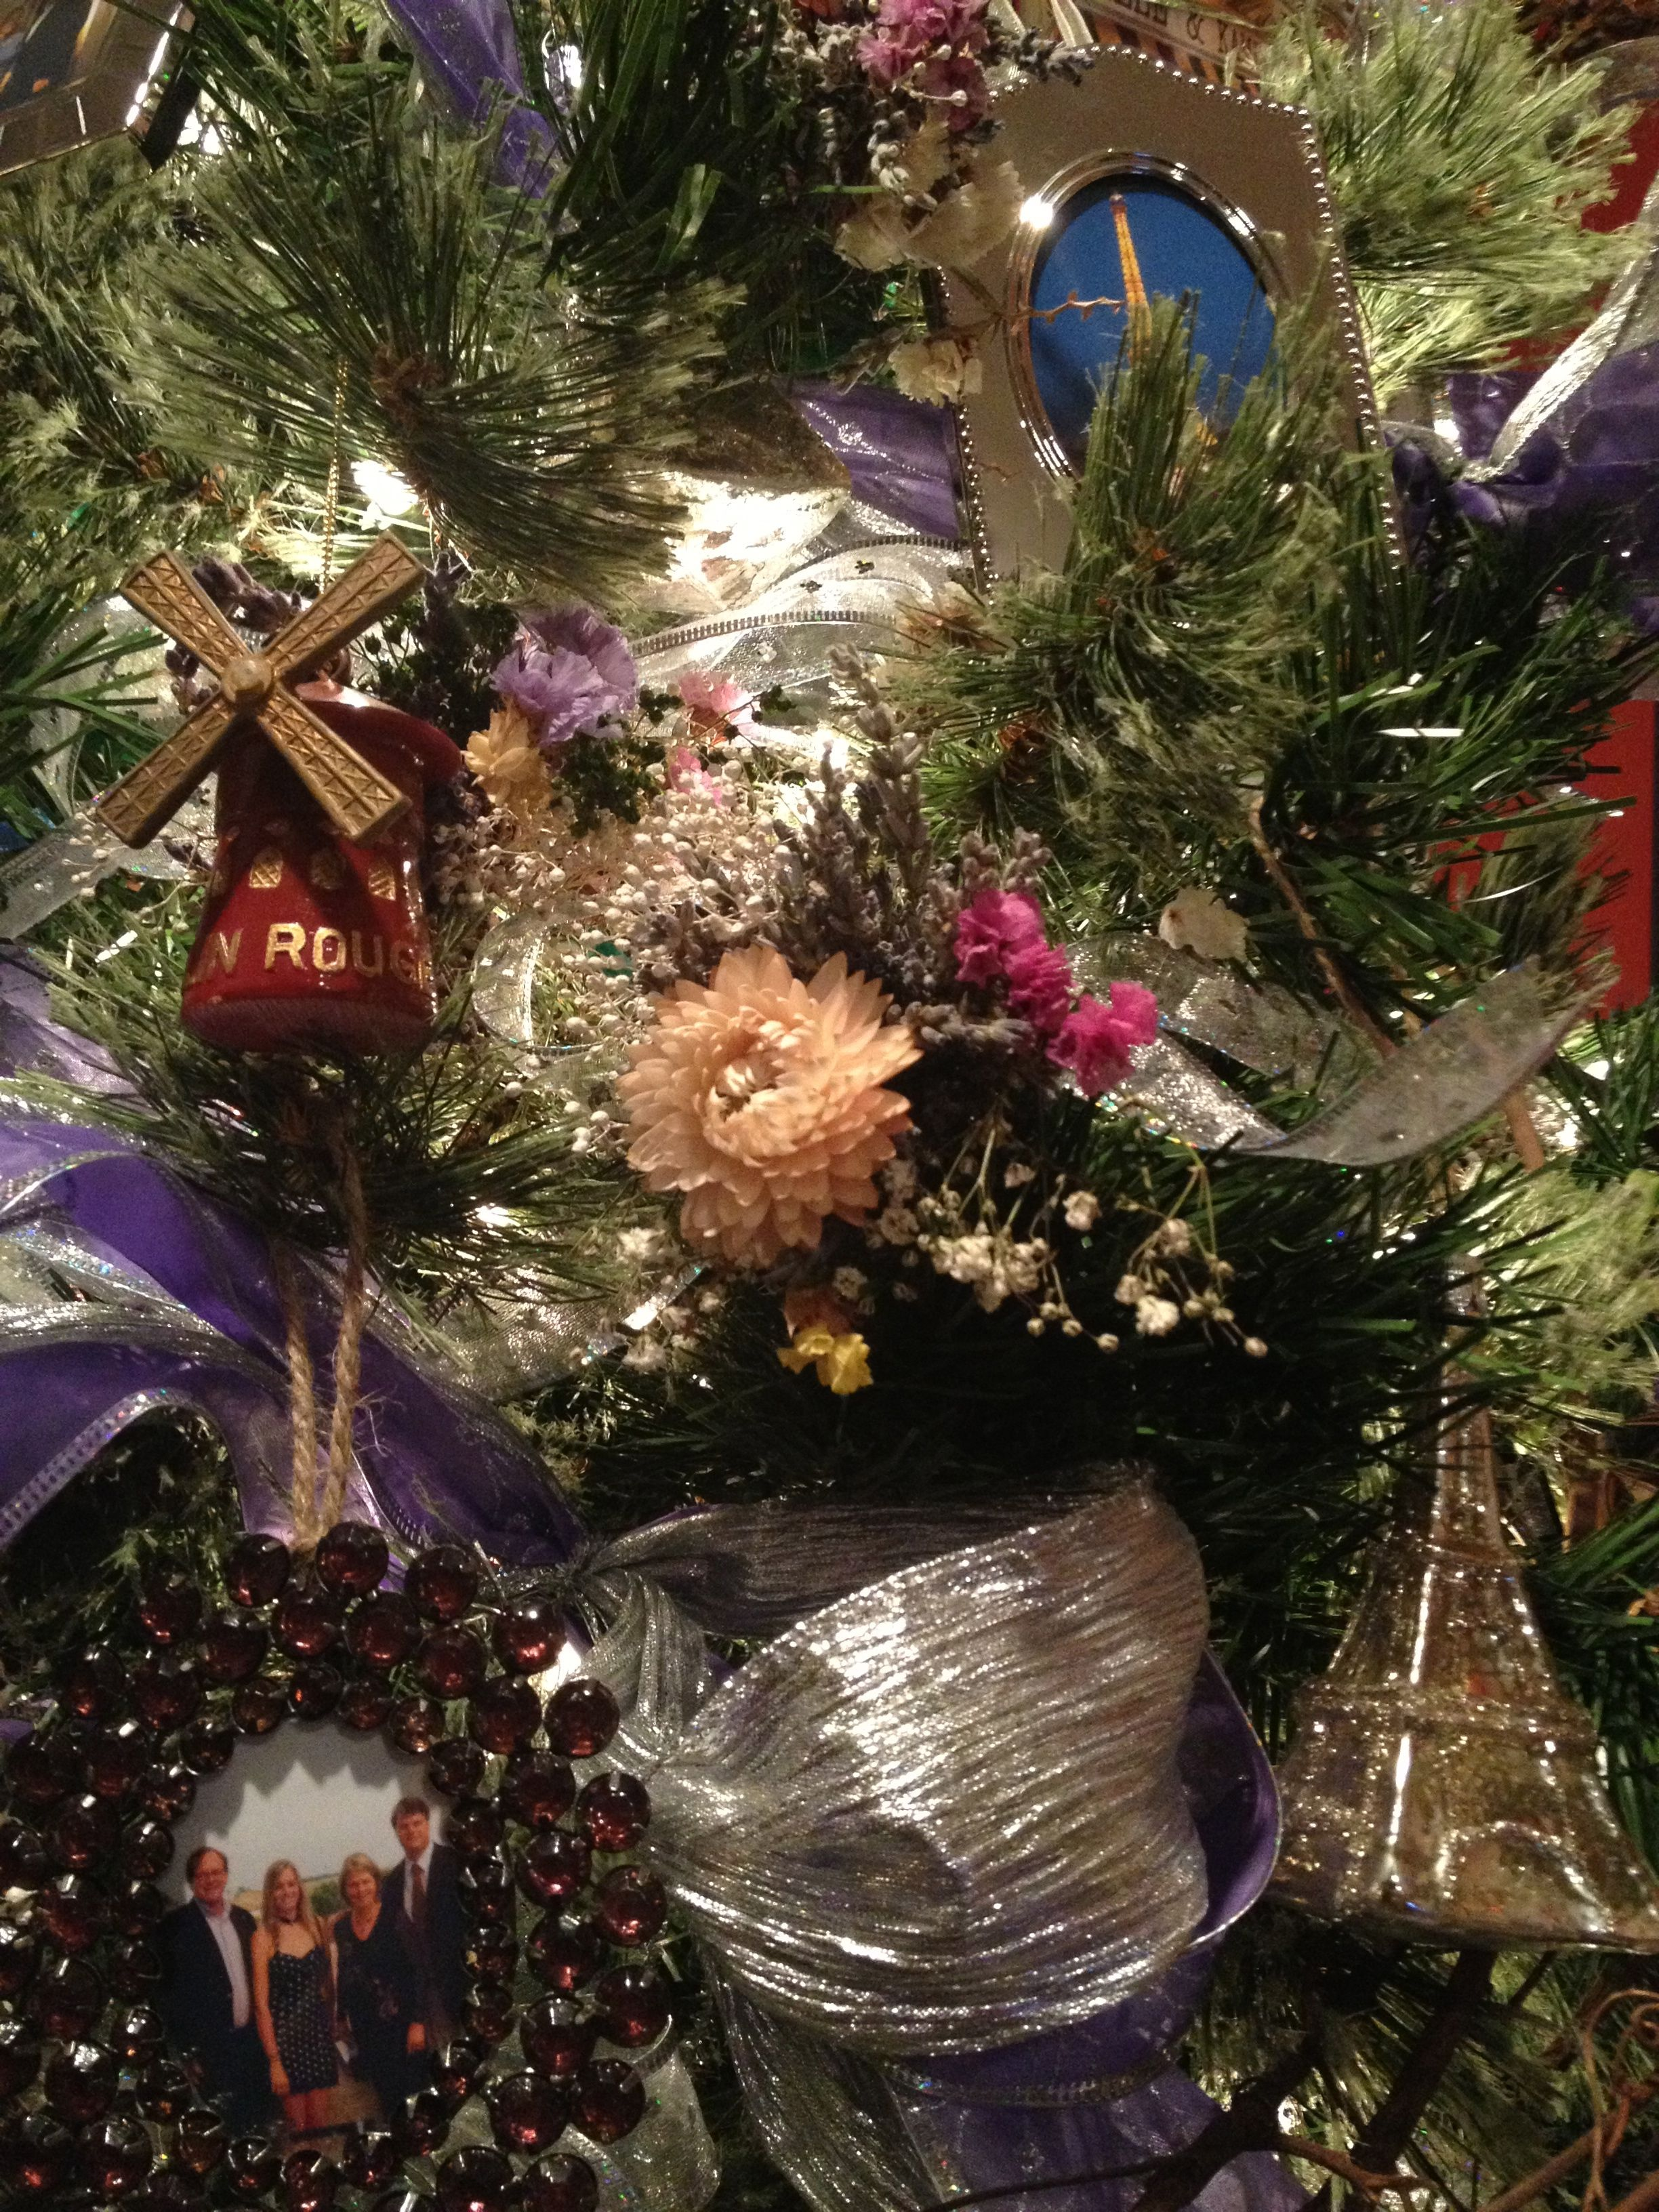 Lavender christmas ornaments - Lavender Baby S Breath Dried Flower Christmas Ornaments And Bouquets From Mt Airy Lavender